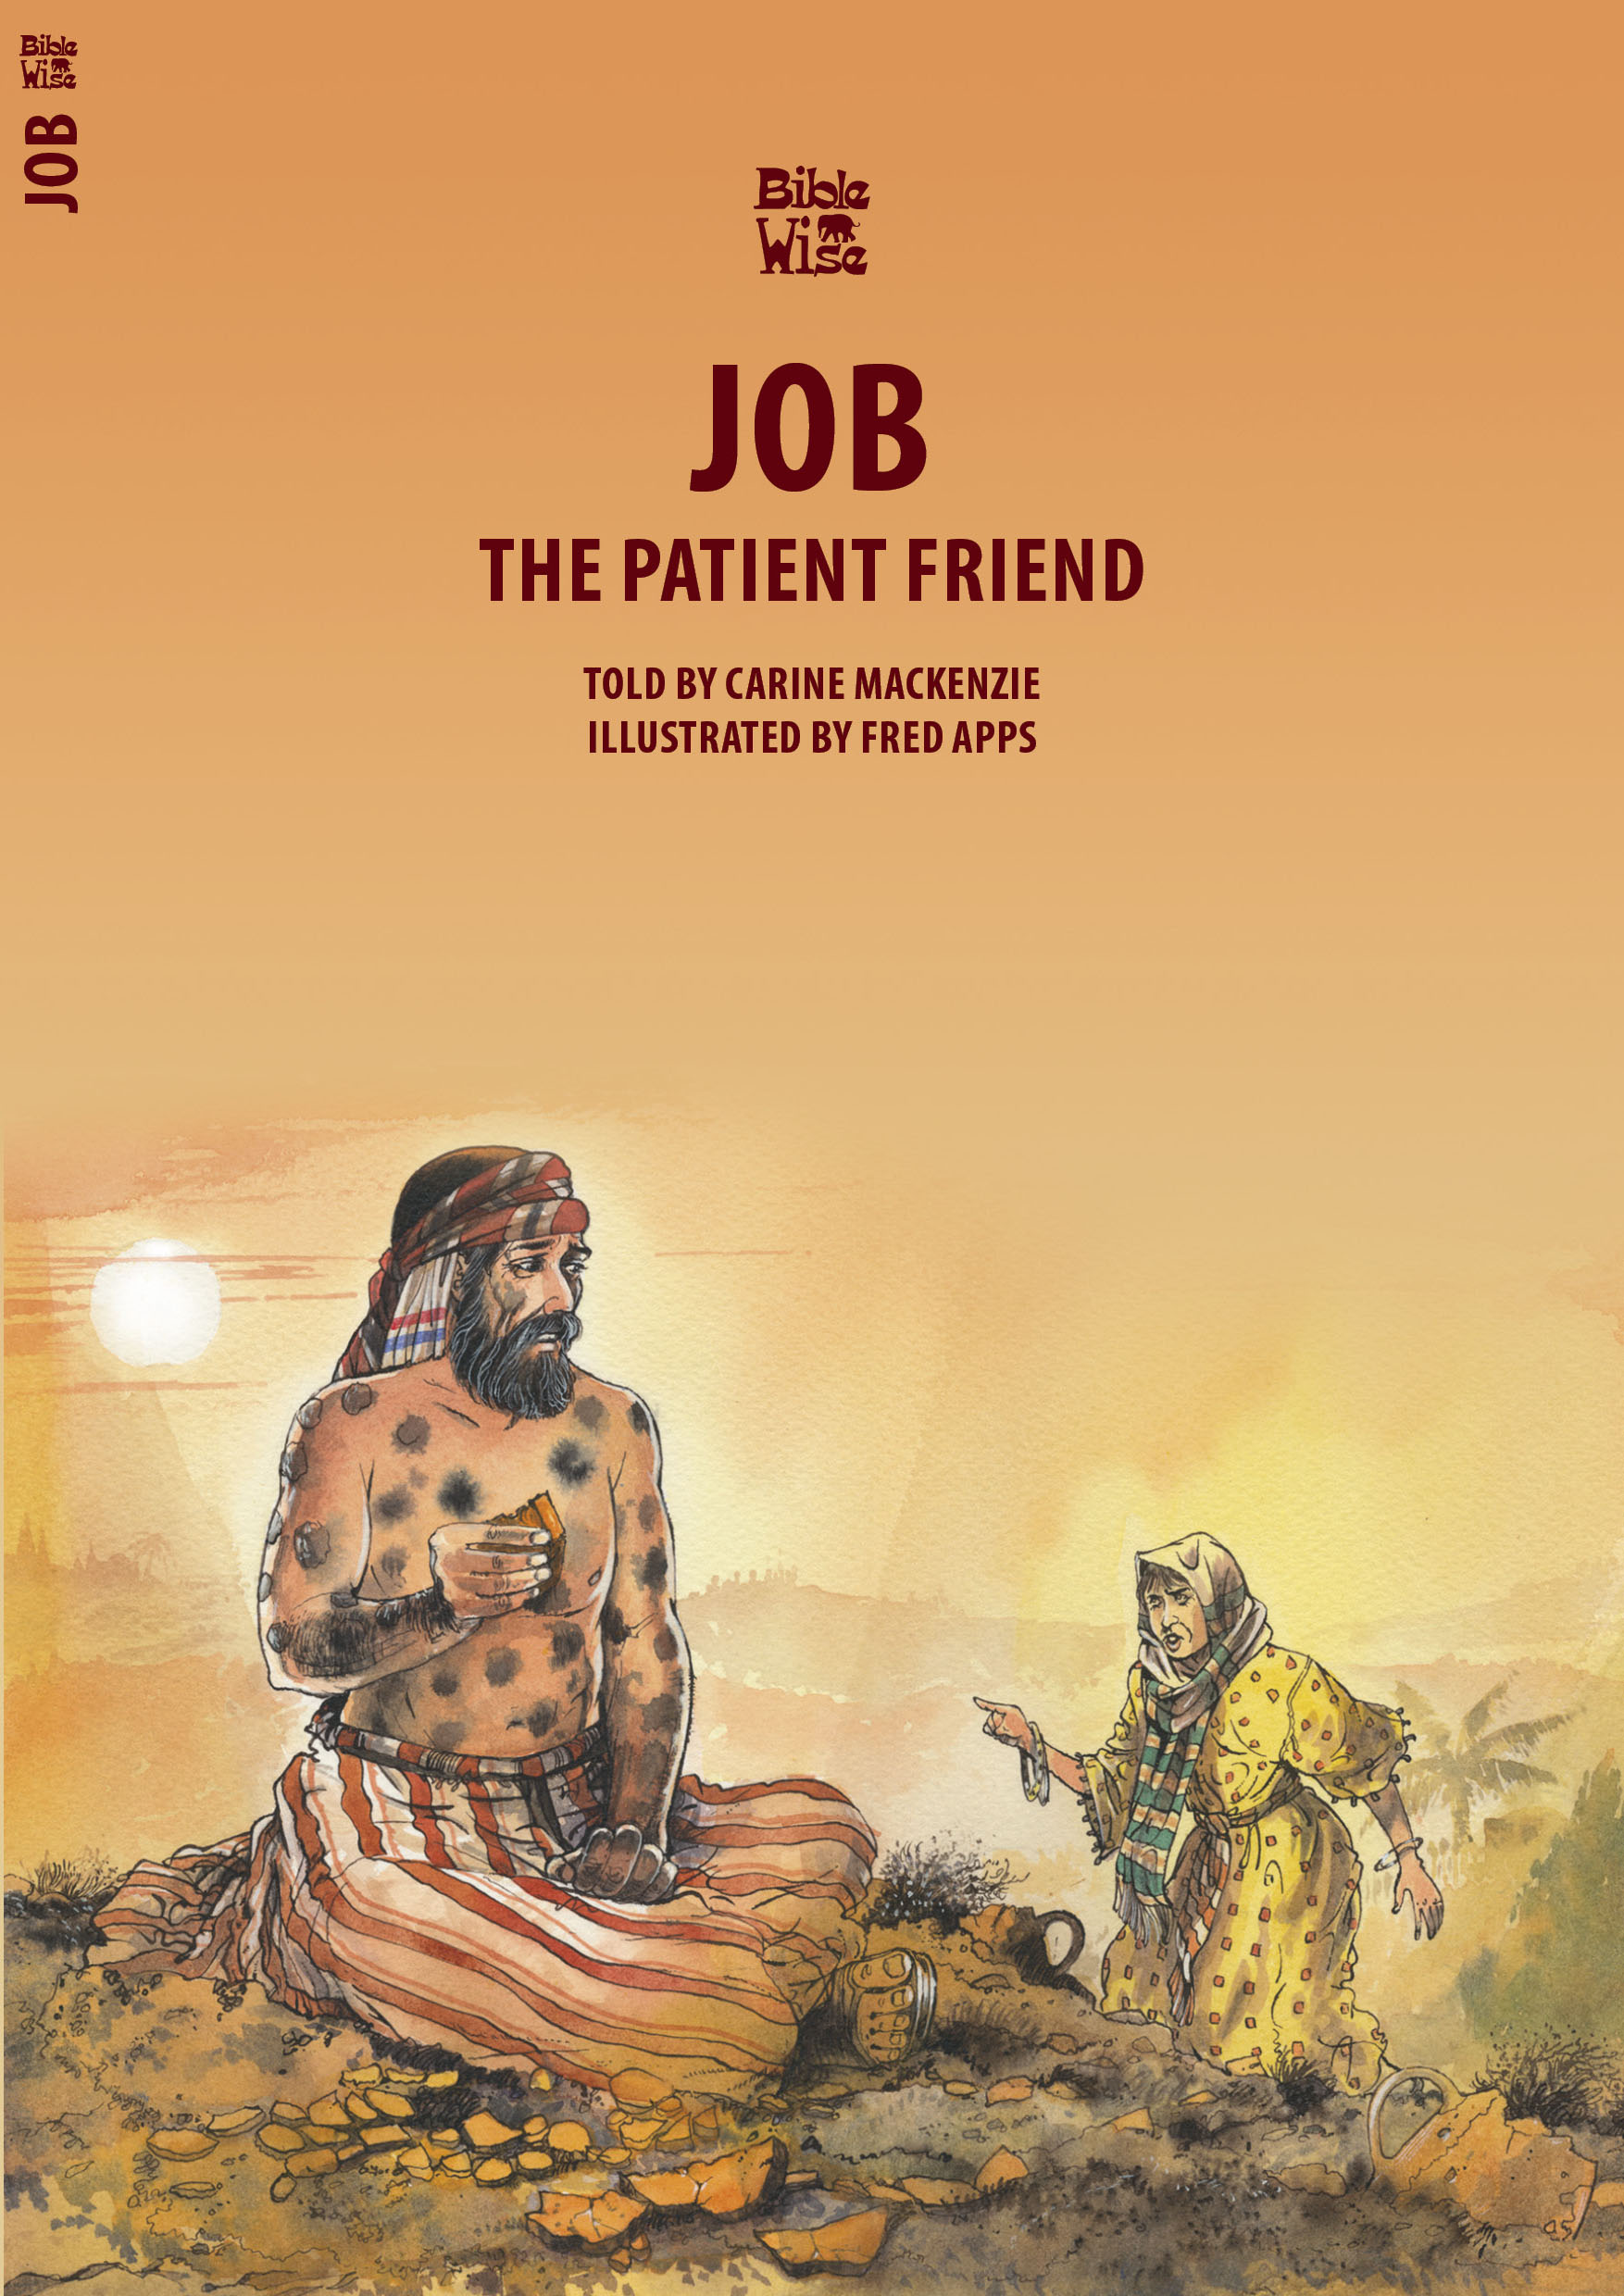 an introduction to the christian myth of job The master of deception ~ introduction chapter 1  myth busting and replacements offered for this christian myth and jewish fable you discard.